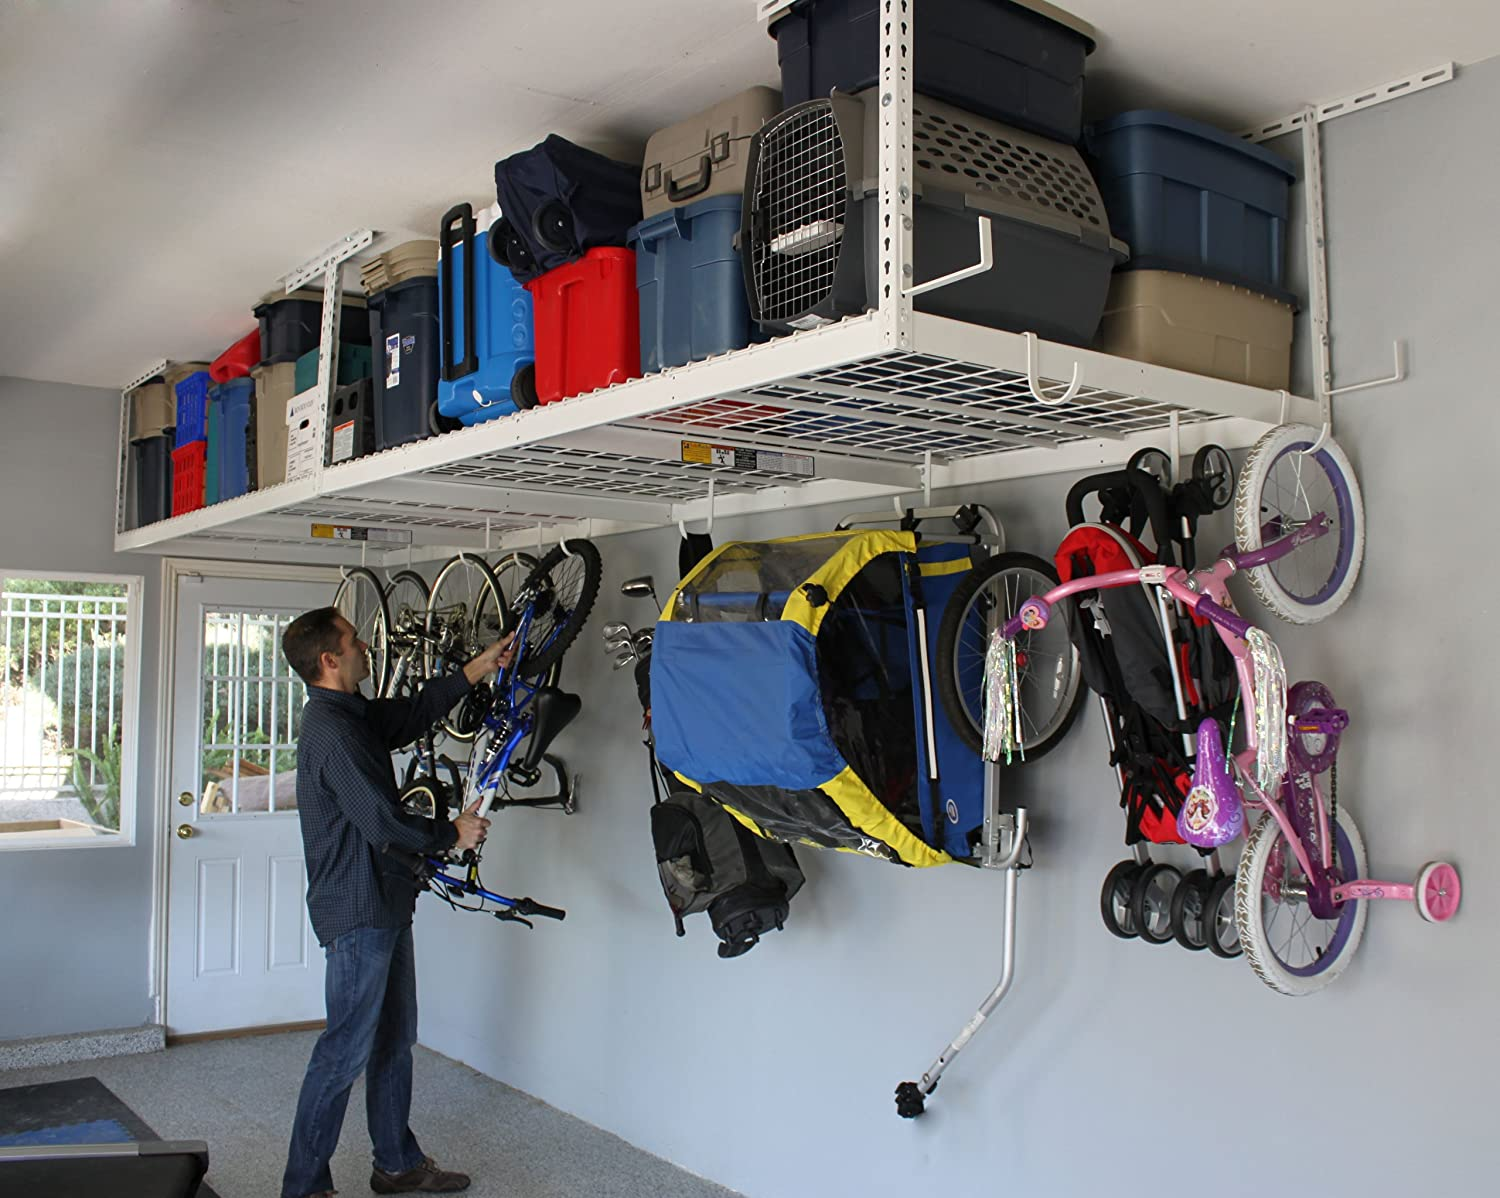 reviews bike storage image home ceiling tire overhead for mounted racks depot full garage